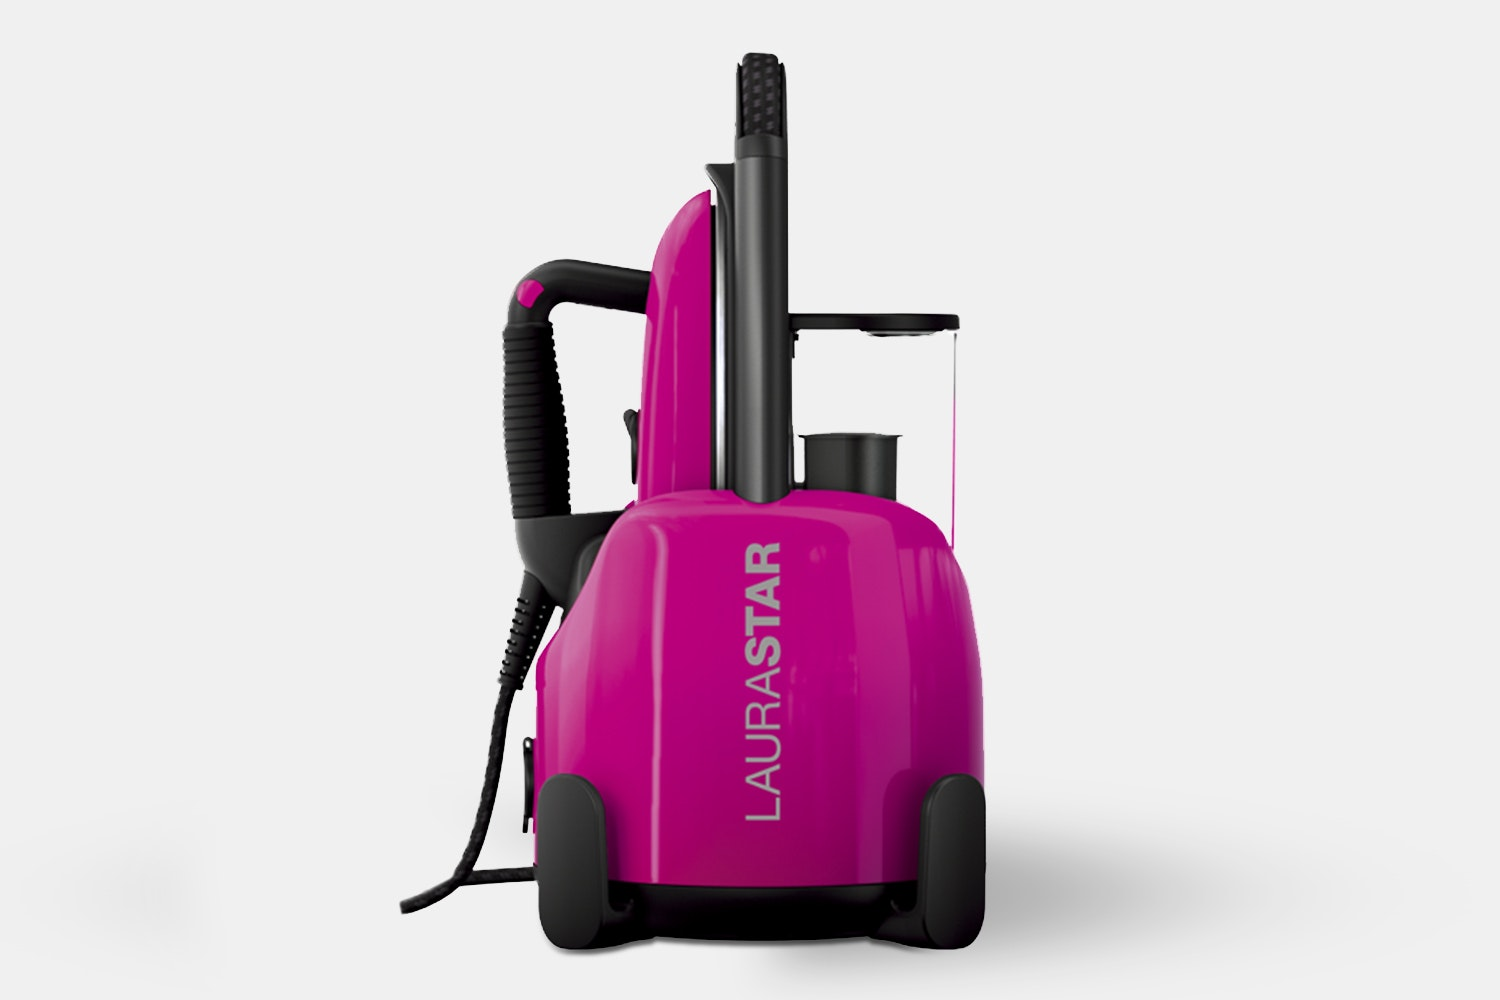 Laurastar Lift Plus Steam Iron